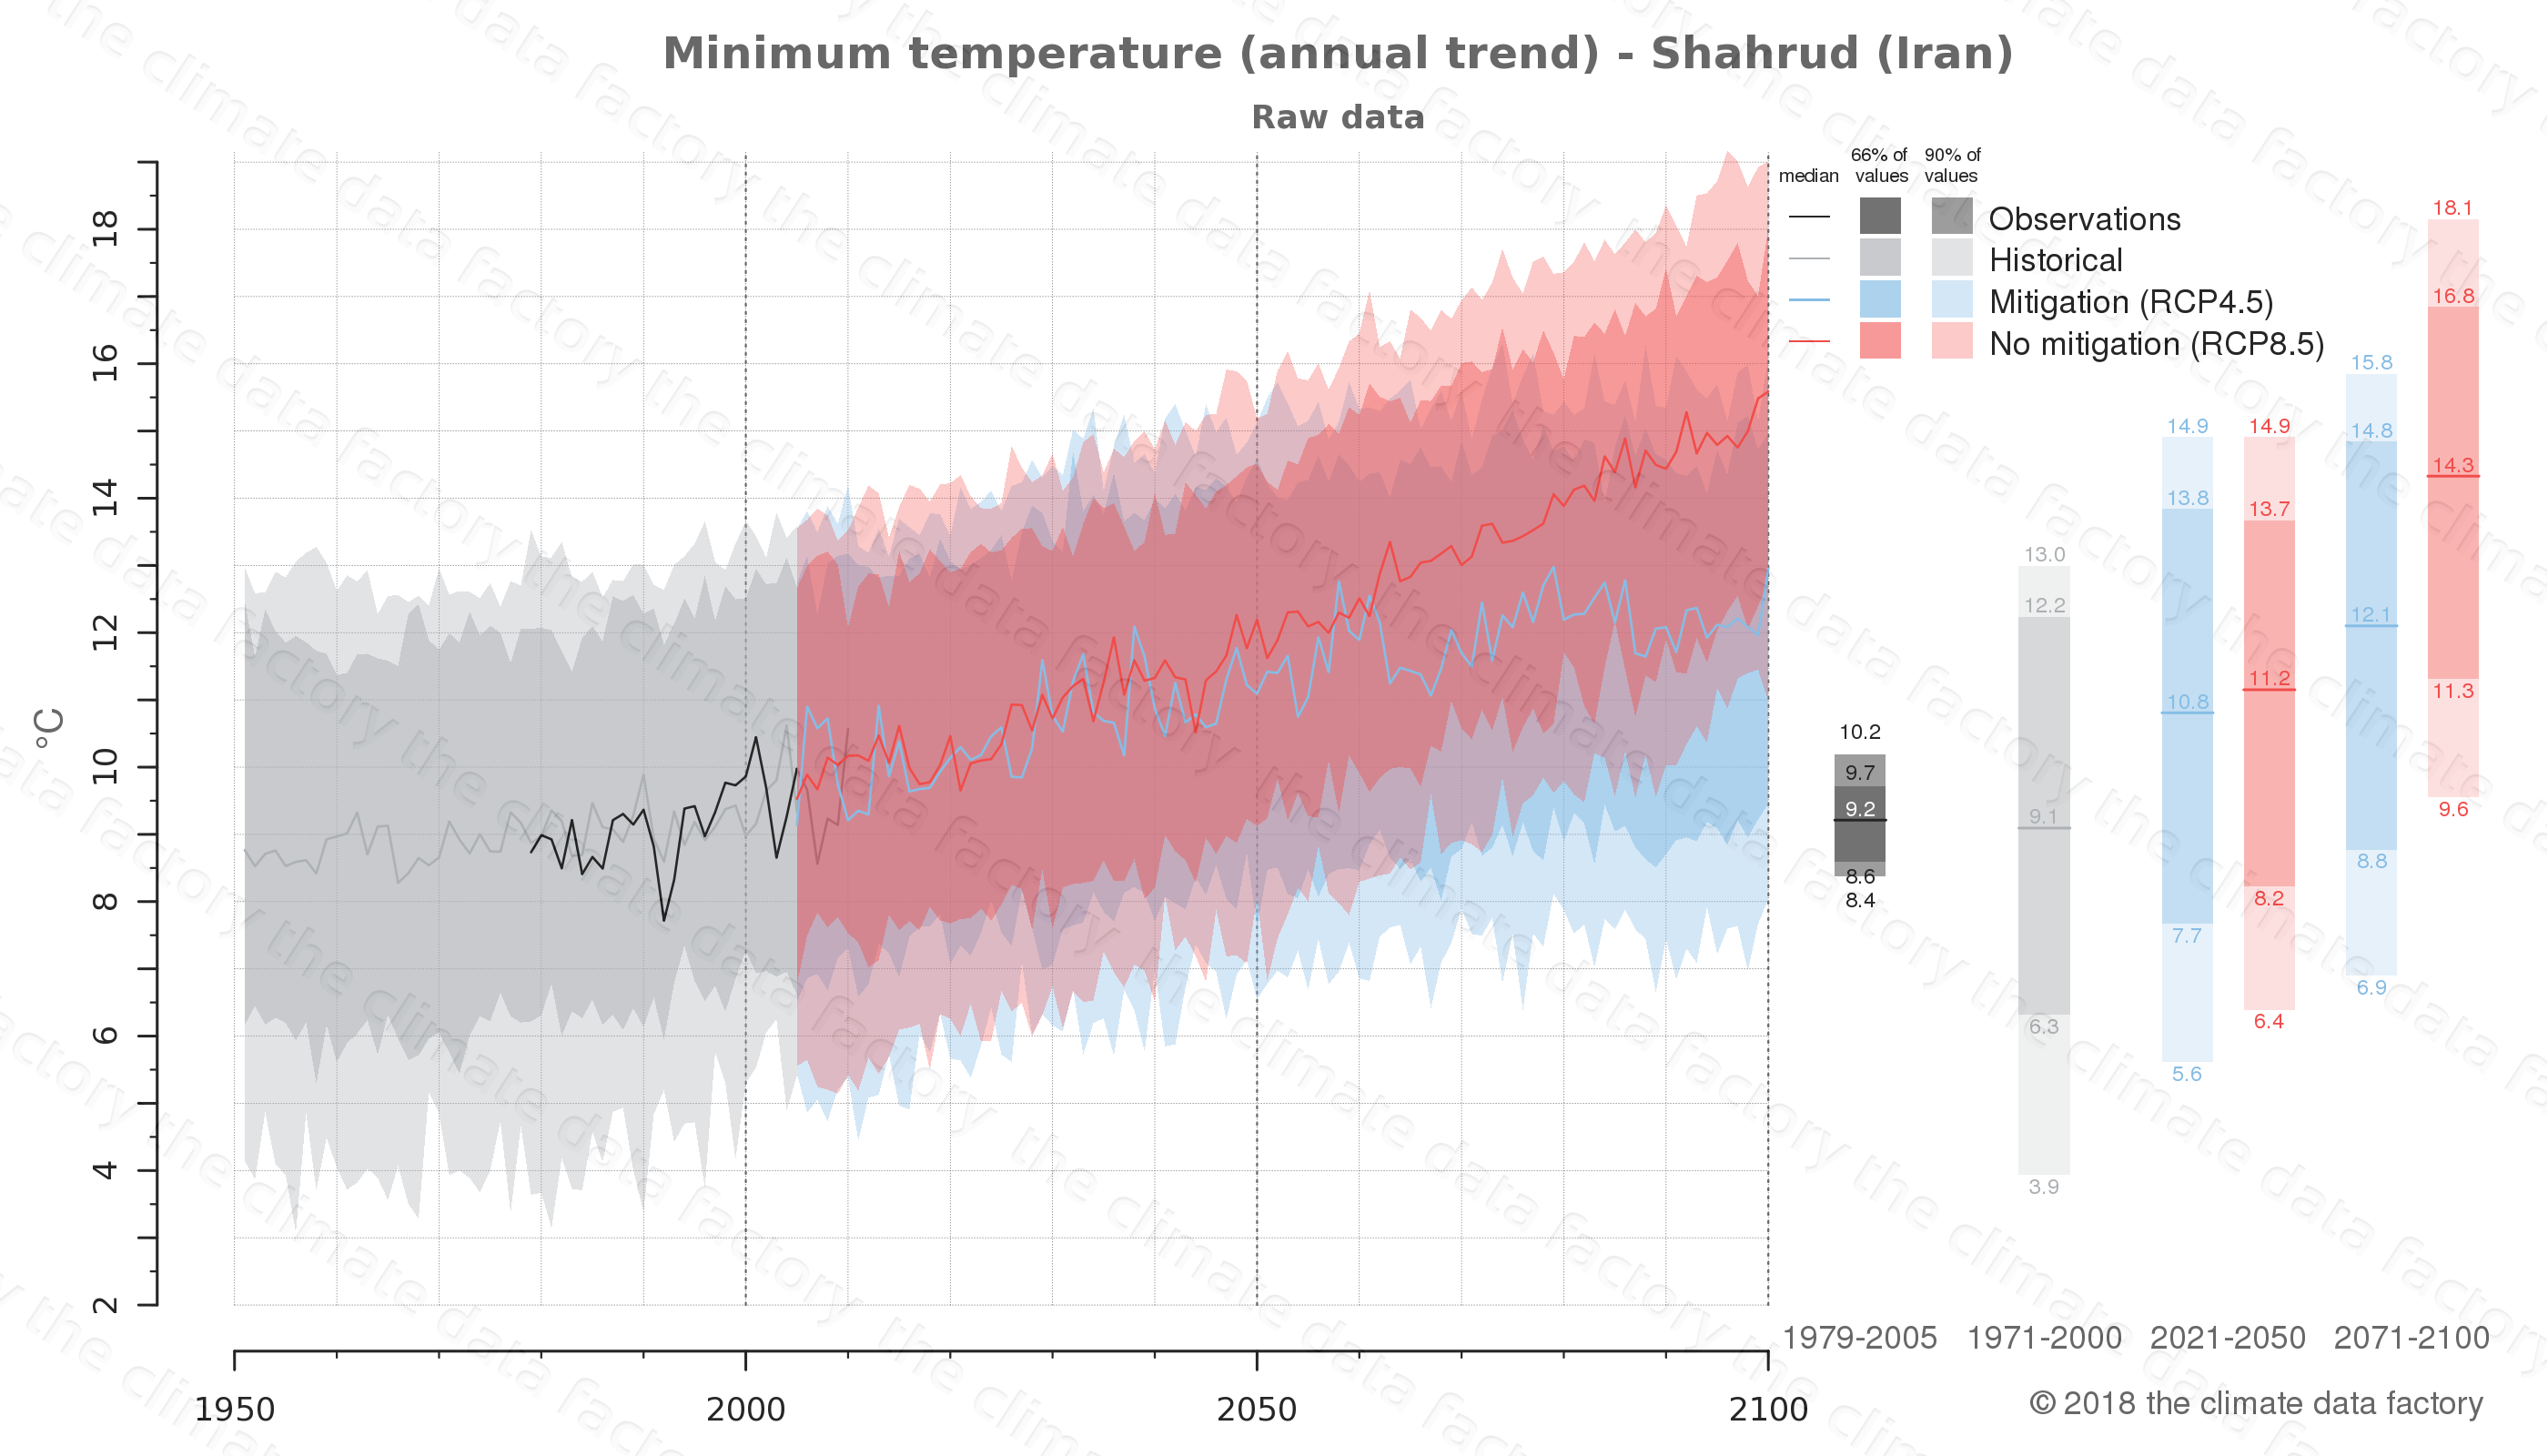 climate change data policy adaptation climate graph city data minimum-temperature shahrud iran